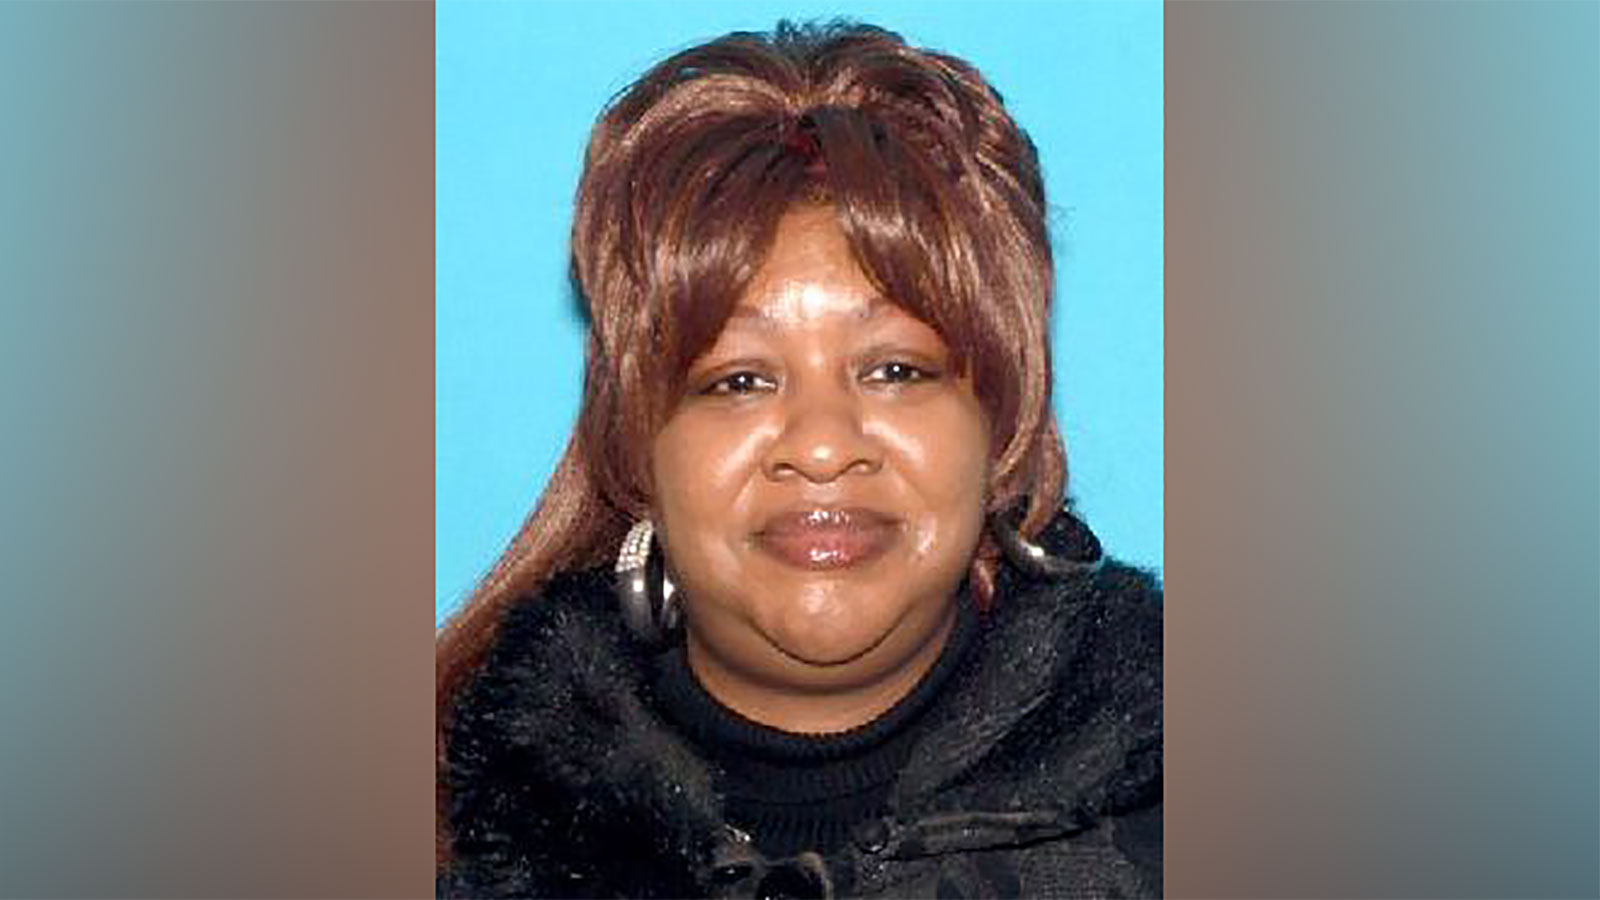 Body of woman missing for 6 years found in car submerged in New Jersey river 1